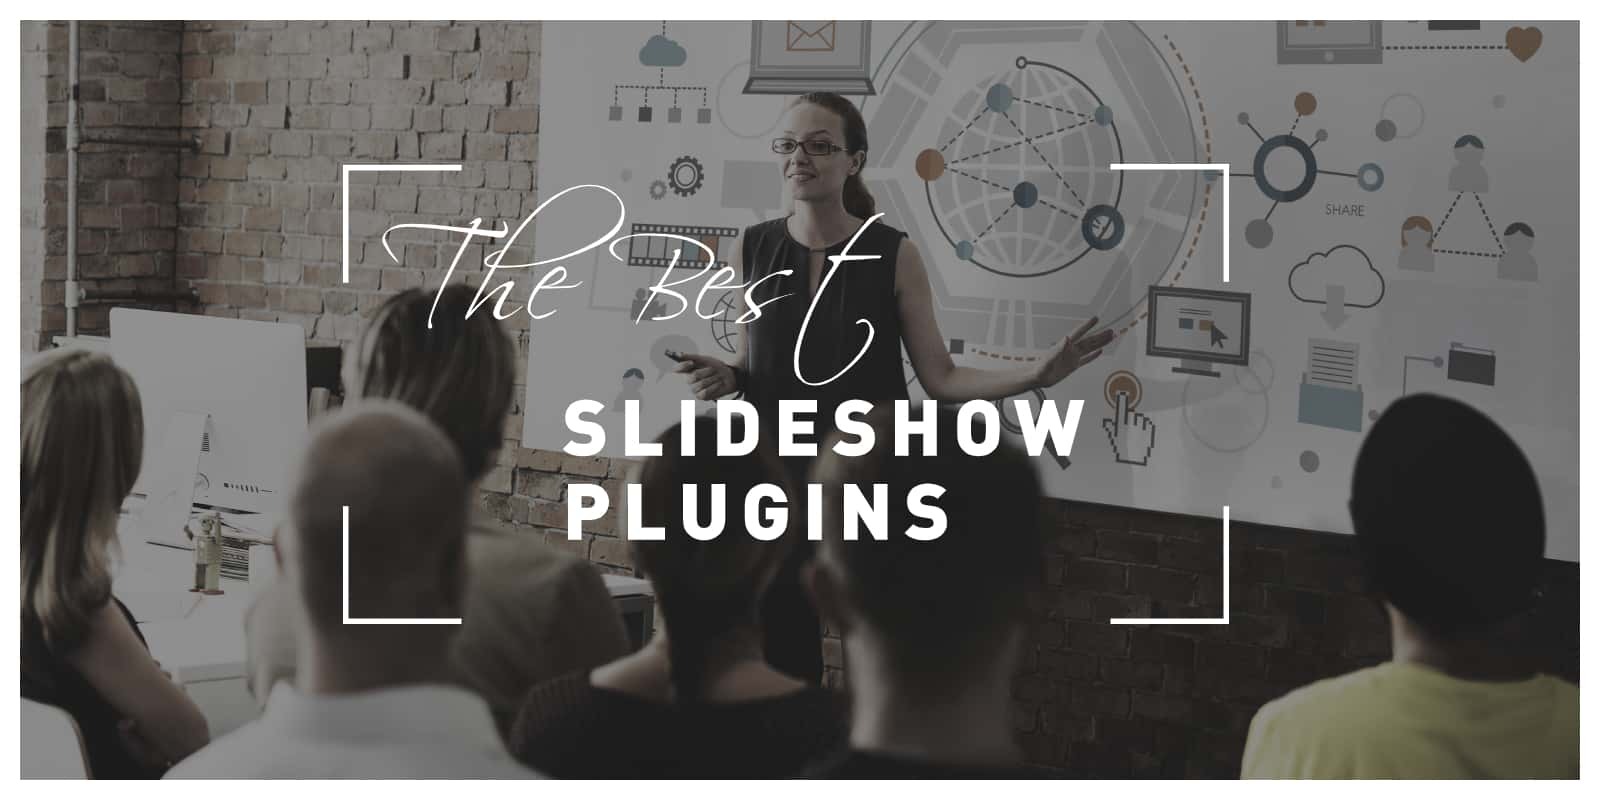 Best Slideshow plugins